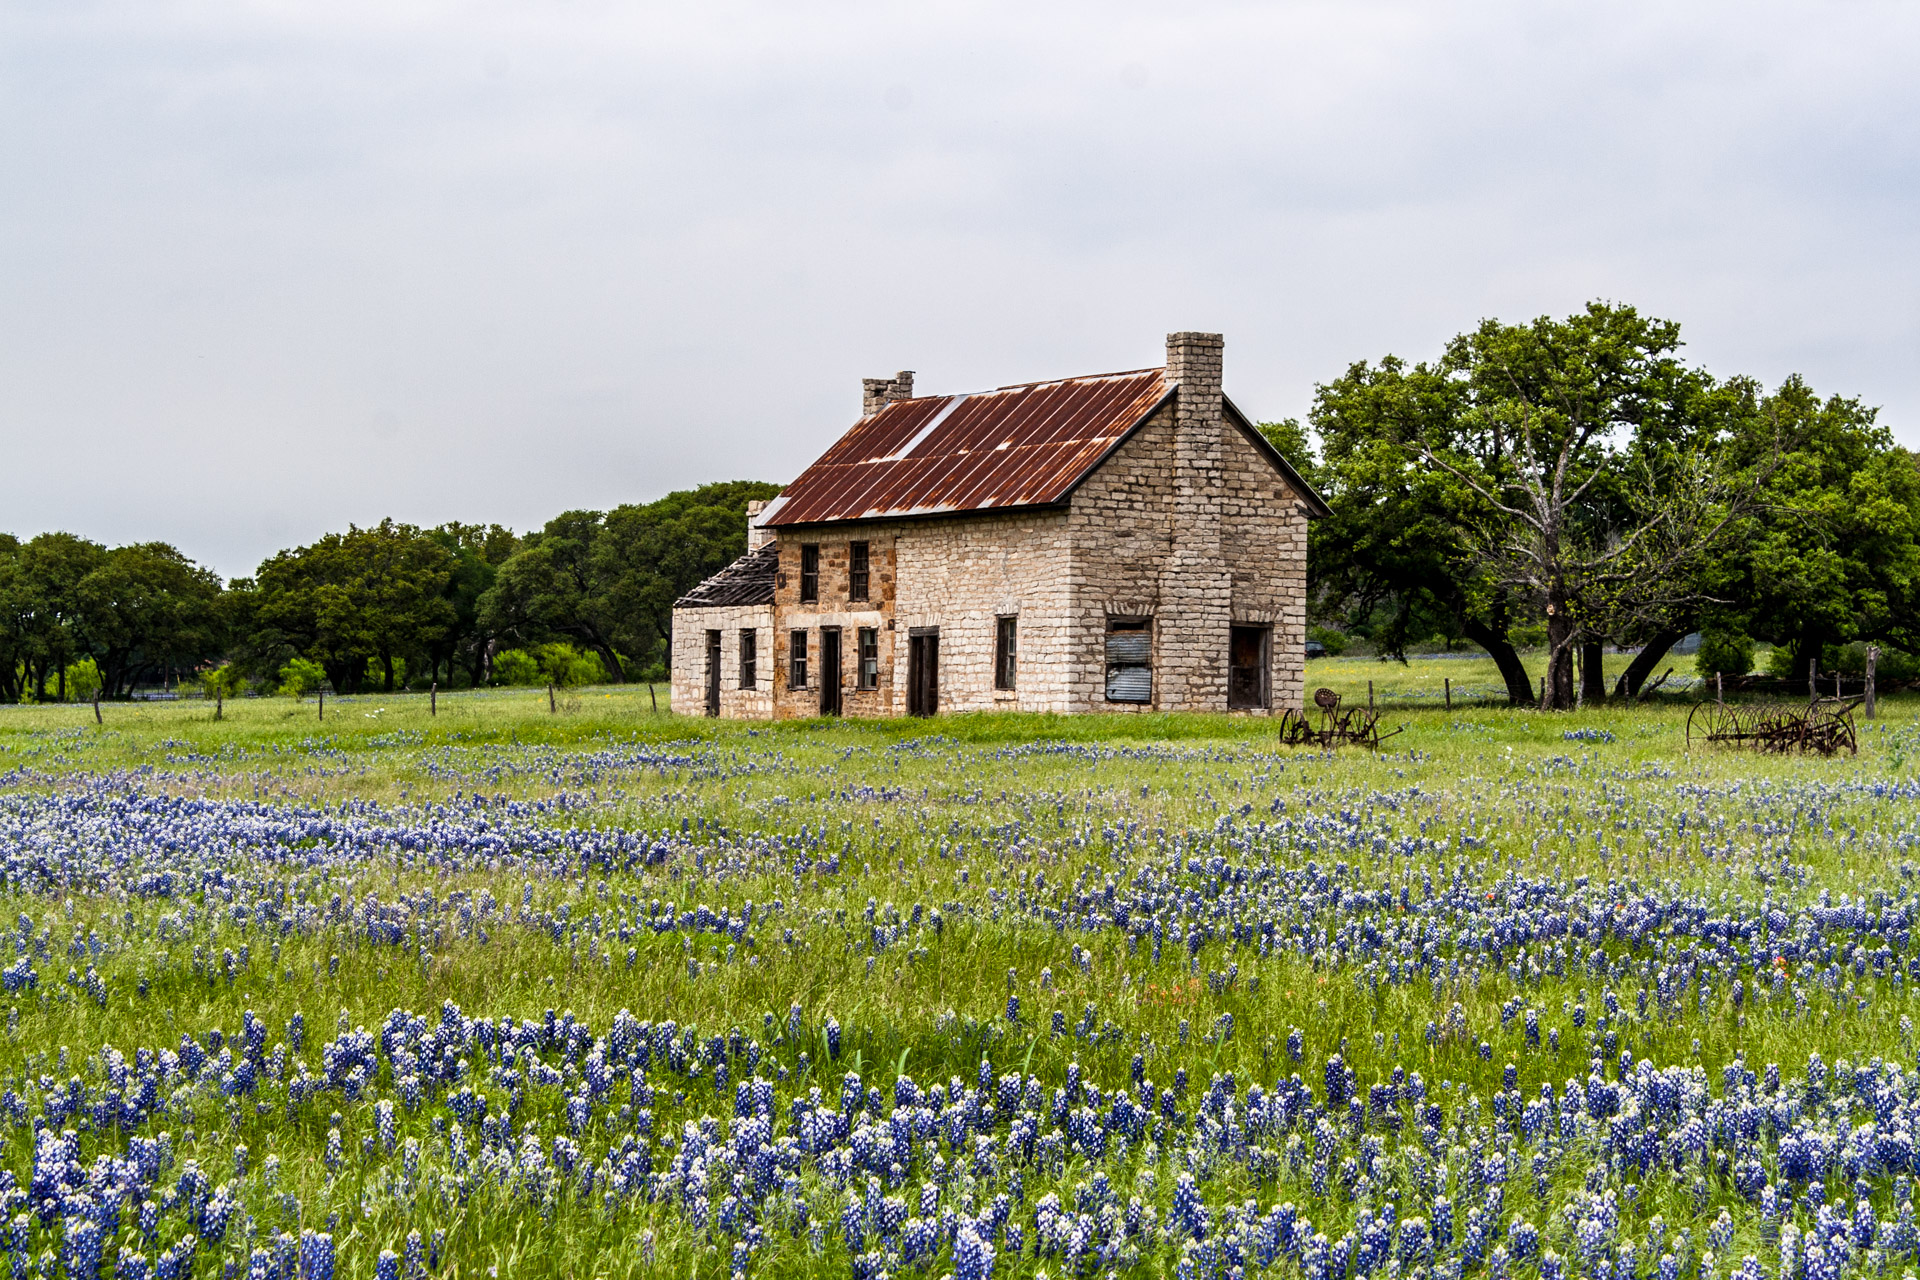 Farmhouse In A Field Of Bluebonnets + Friday Link Love